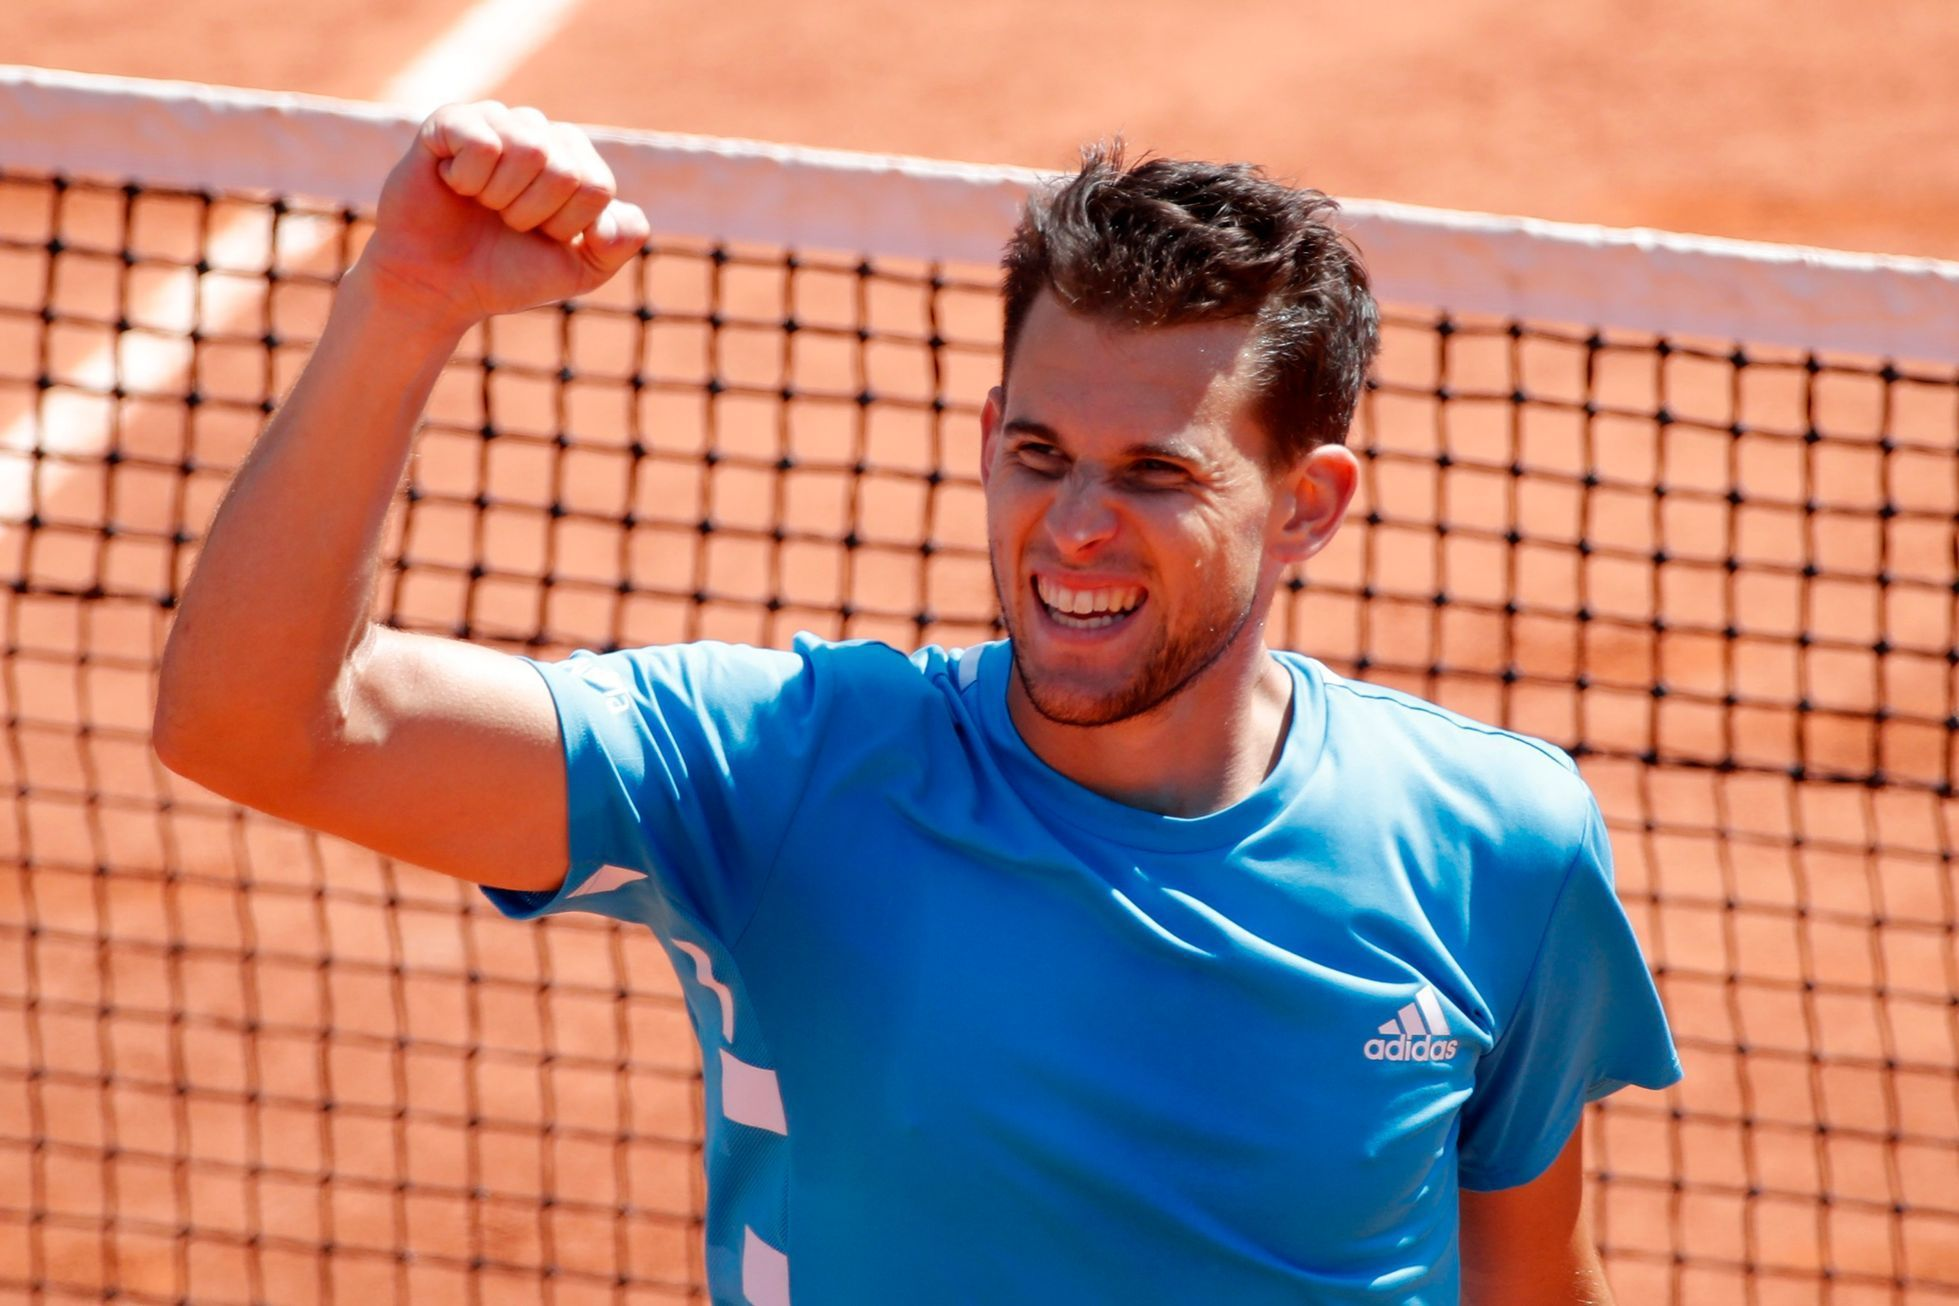 Dominic Thiem v semifinále French Open 2019